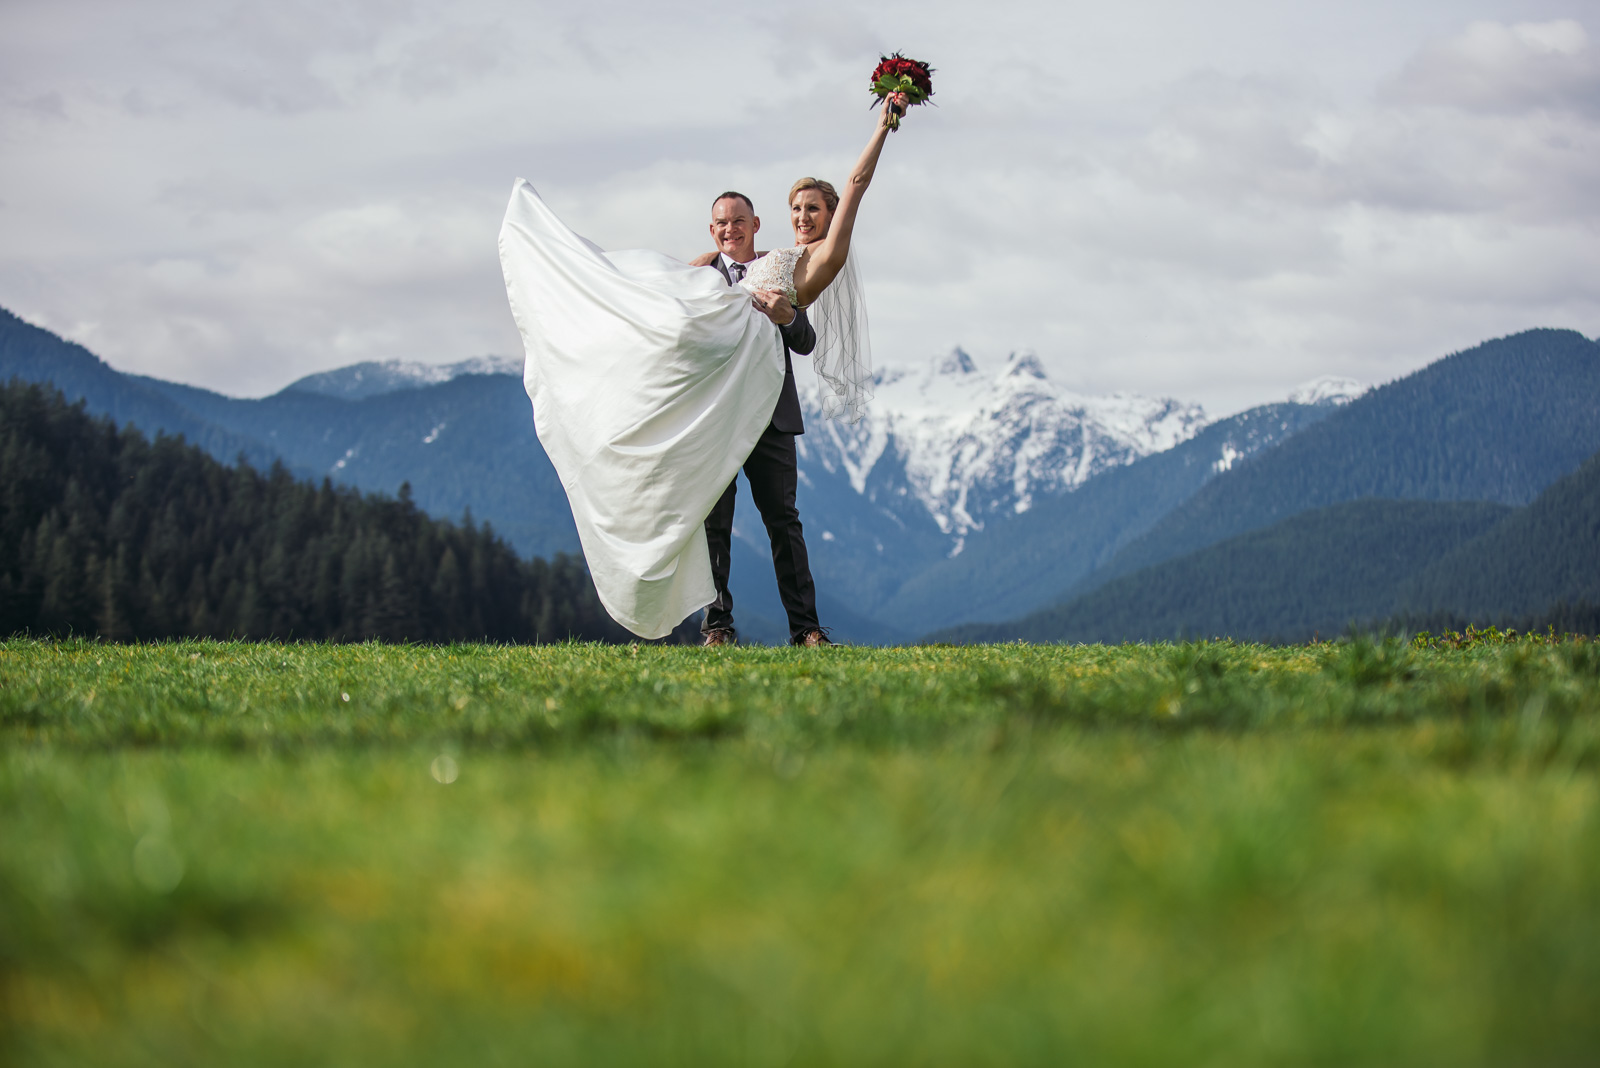 vancouver-island-wedding-photographers-grouse-mountain-winter-wedding-28.jpg